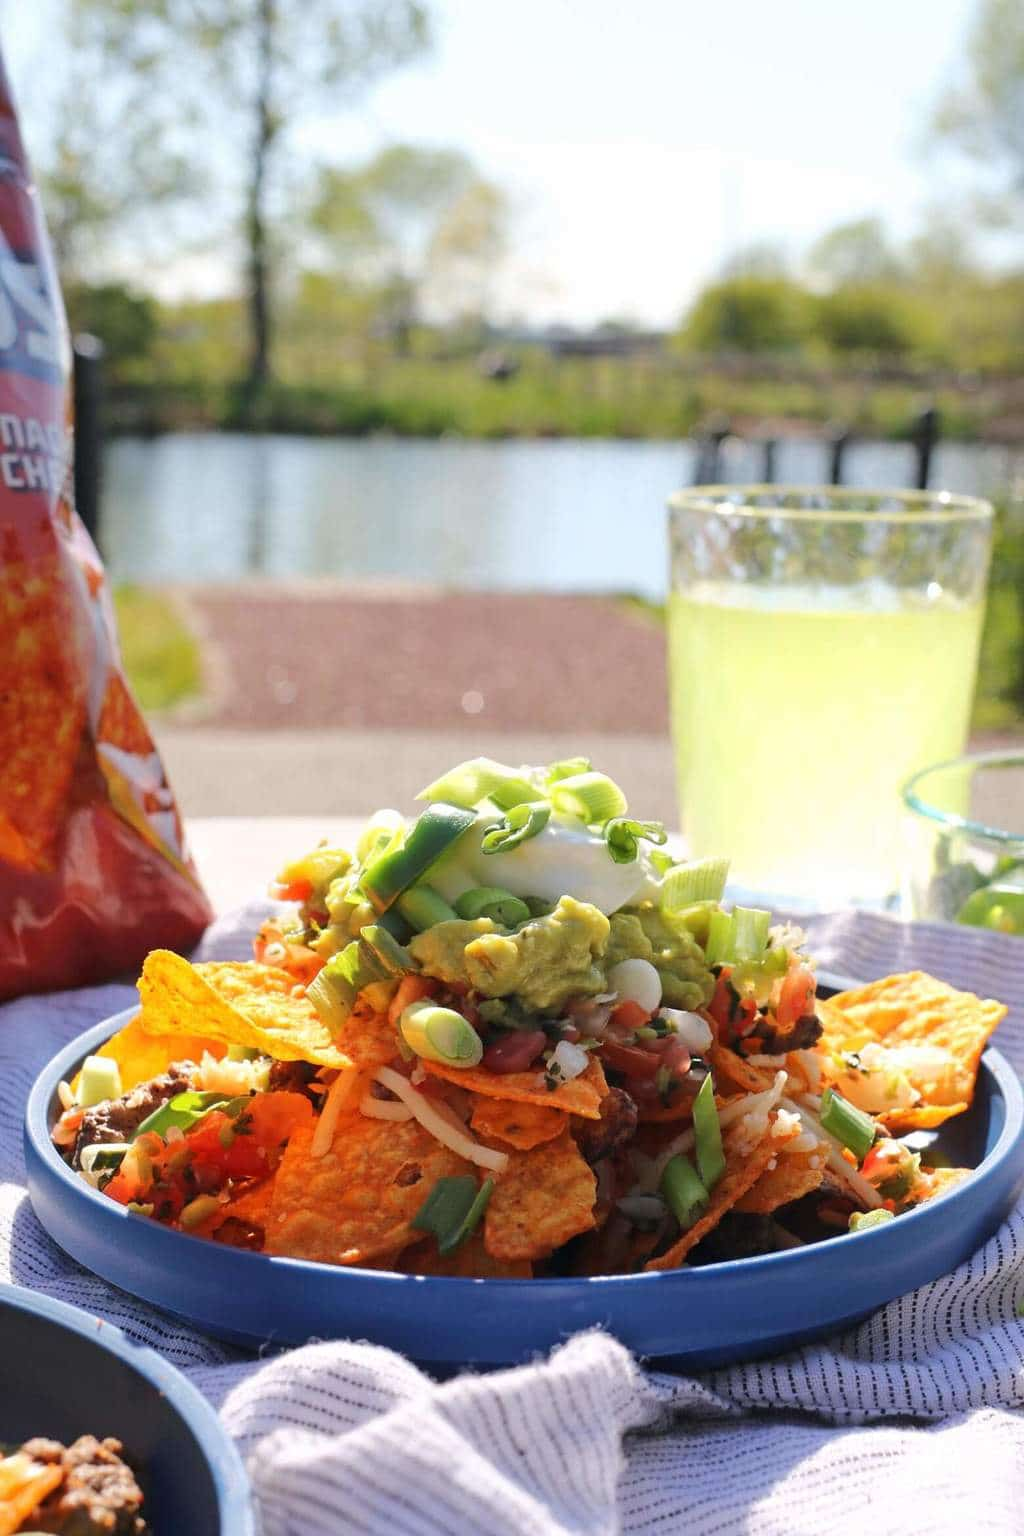 Say yes to summer with this easy recipe for Quick Summer Doritos Nachos. Whether you are lakeside or on a boat, this is easy to make and delicious!